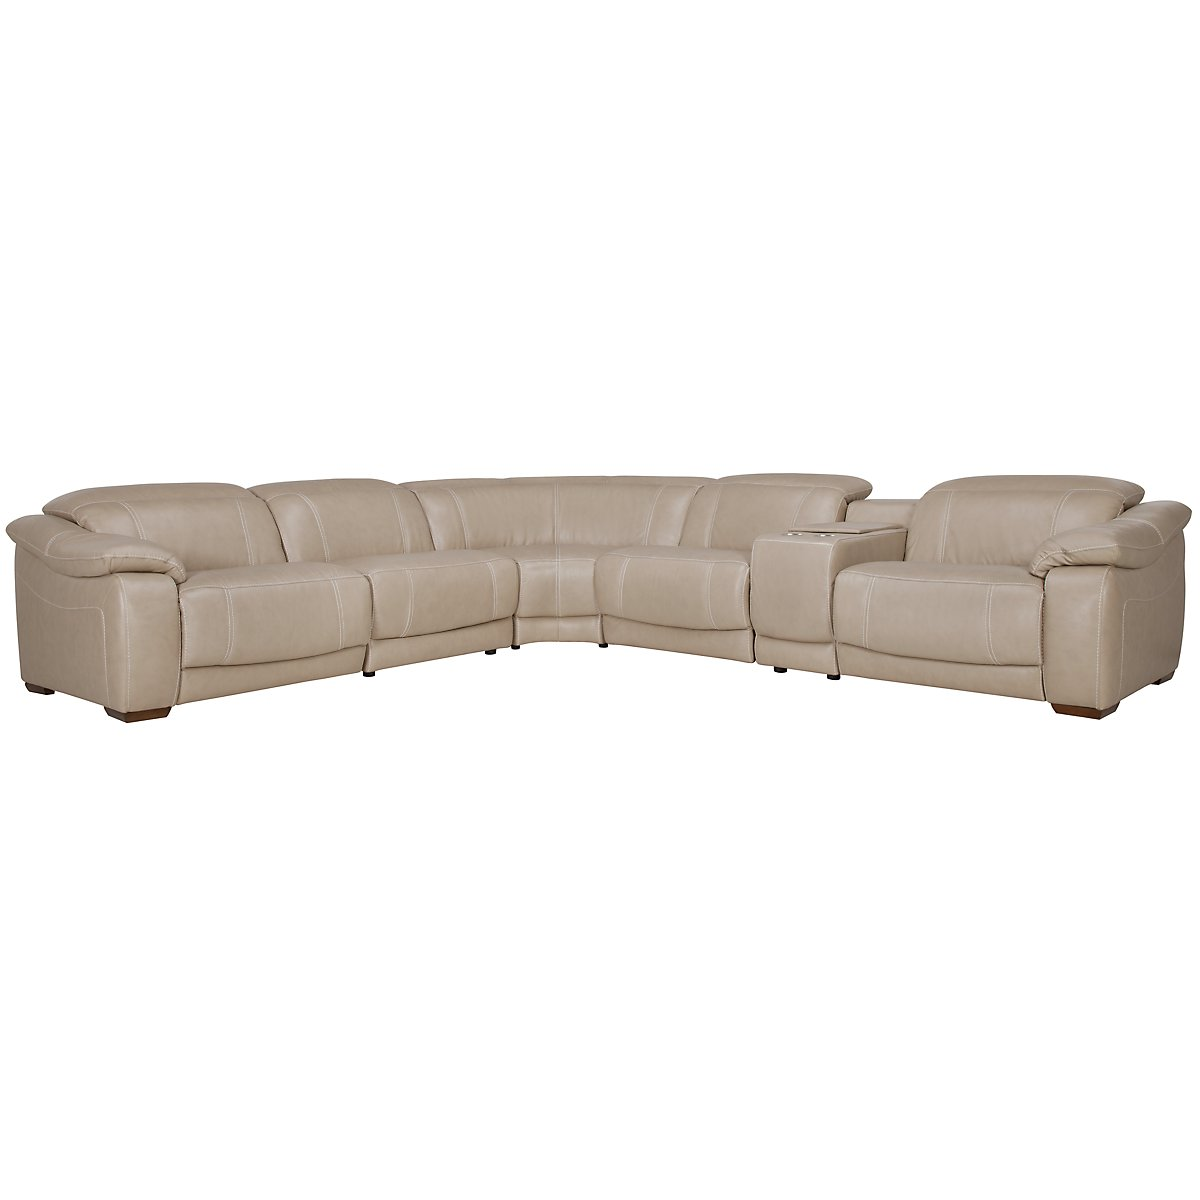 Orion Lt Taupe Leather & Bonded Leather Large Two-Arm Manually Reclining Sectional